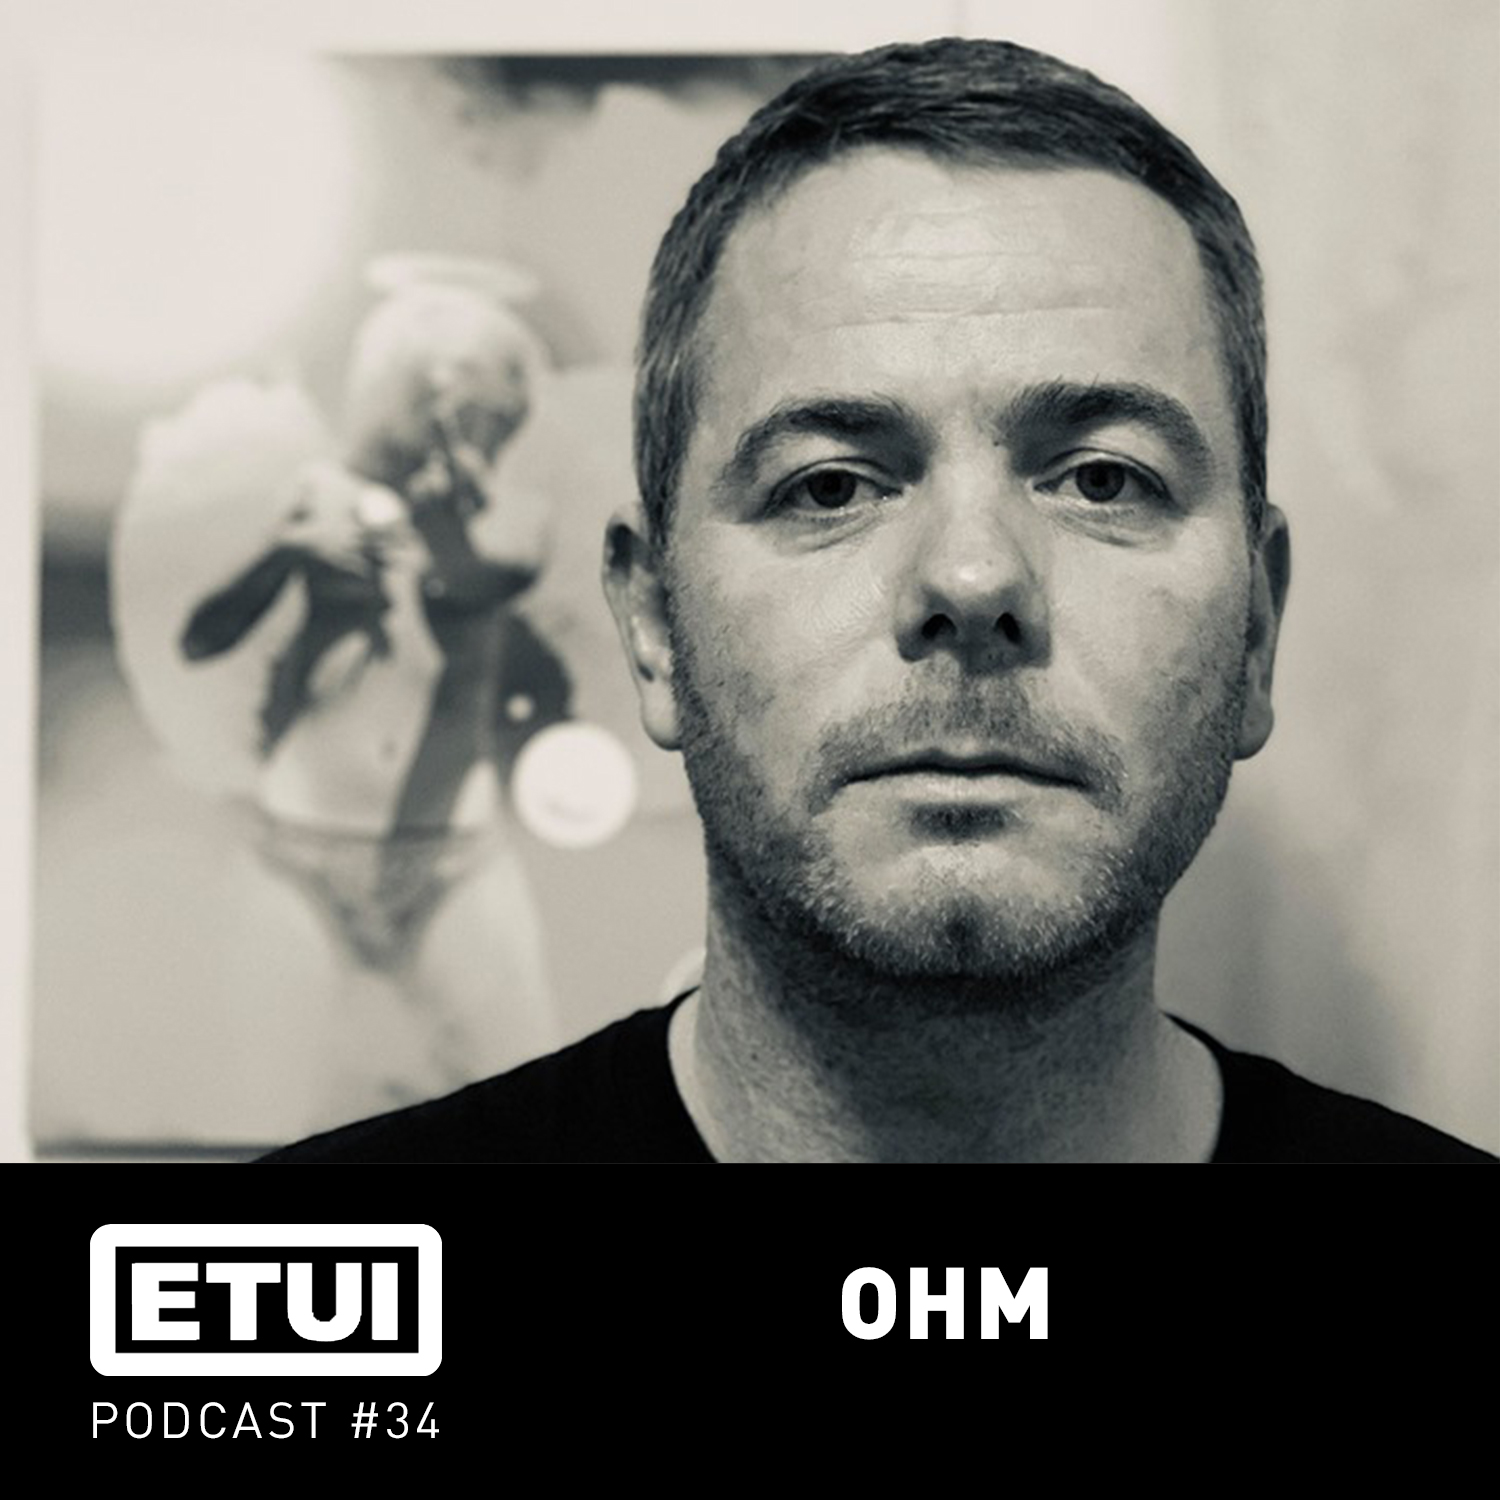 Etui Podcast #34: Ohm-black